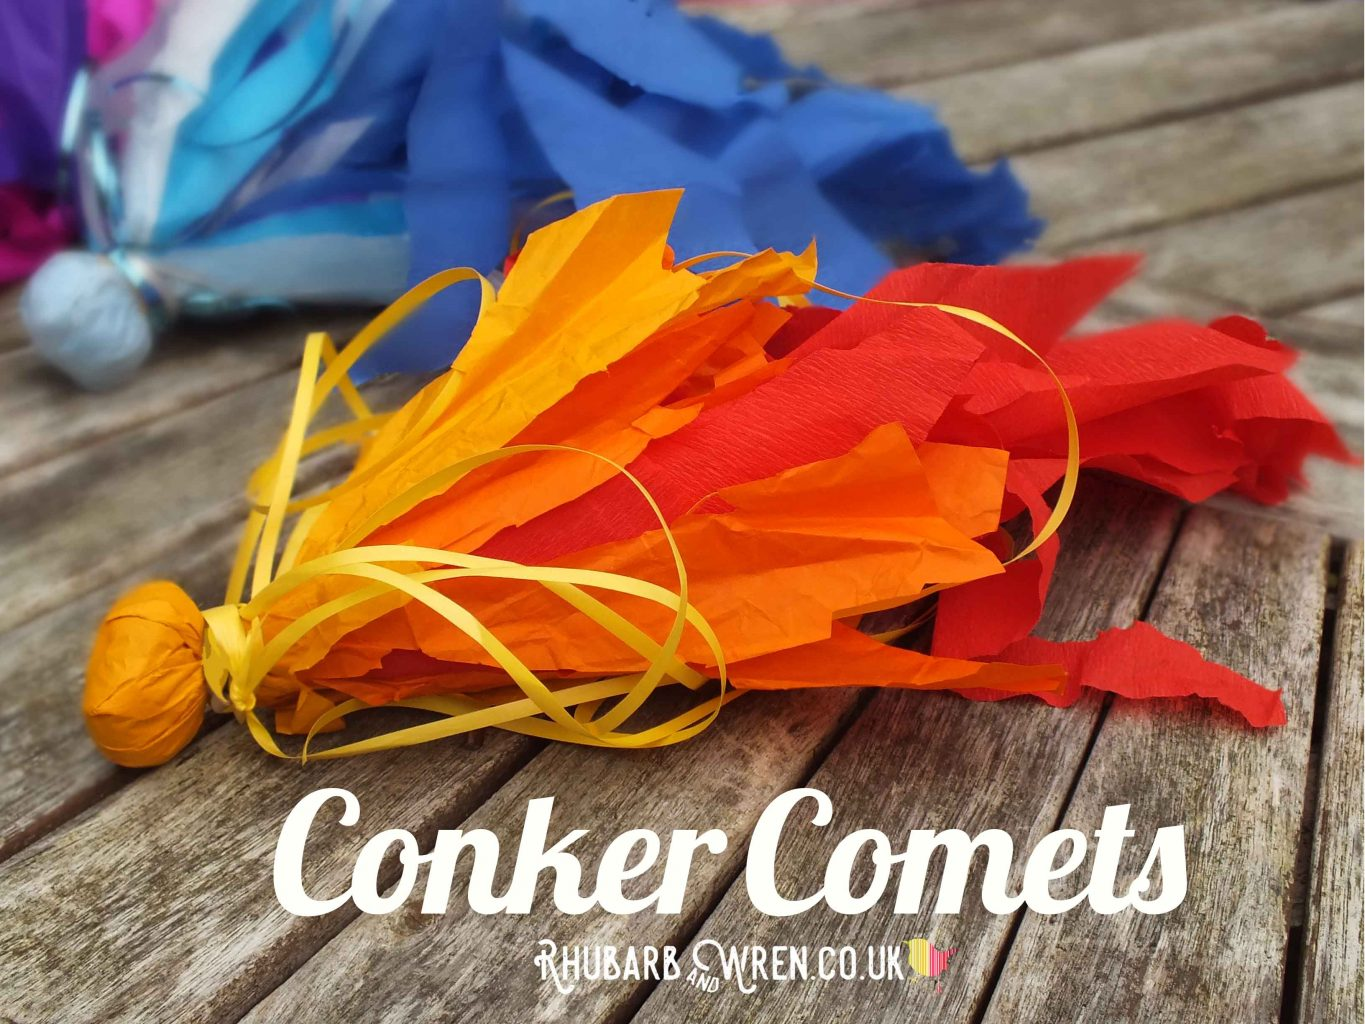 Brightly coloured conker comets - kids' conker activity